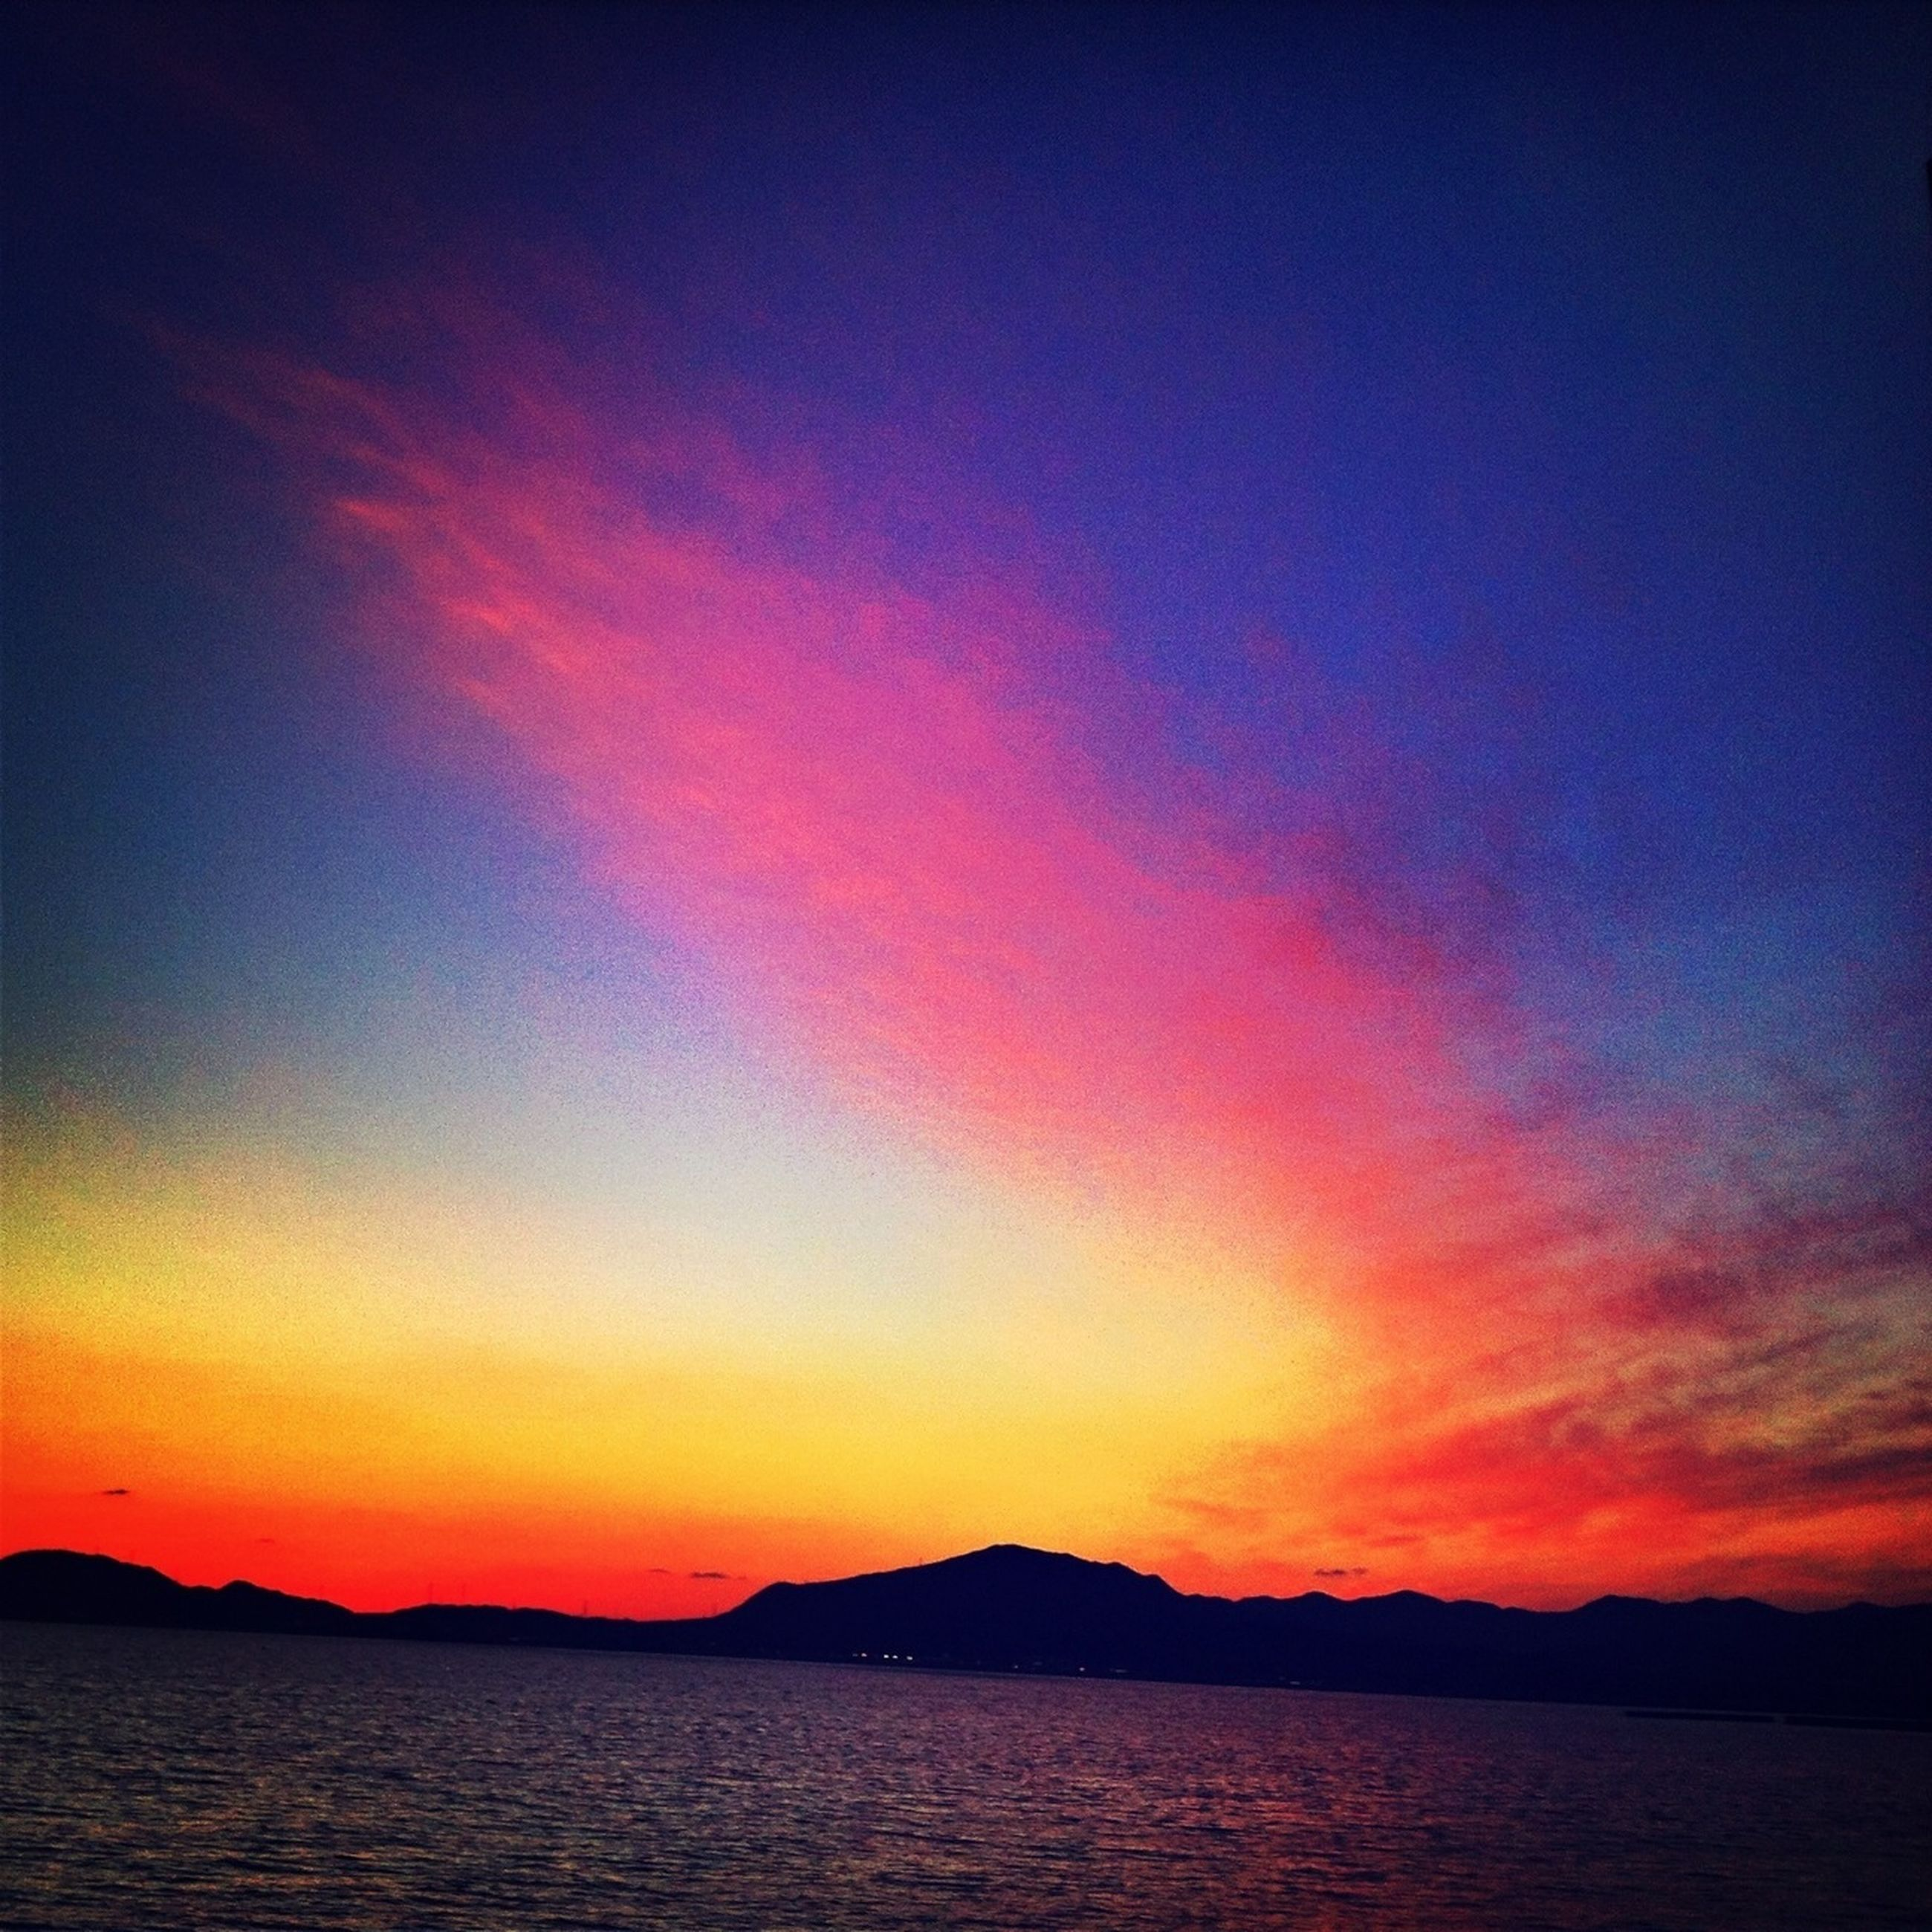 sunset, scenics, water, tranquil scene, tranquility, orange color, beauty in nature, waterfront, mountain, silhouette, sky, sea, idyllic, nature, mountain range, dusk, lake, majestic, dramatic sky, outdoors